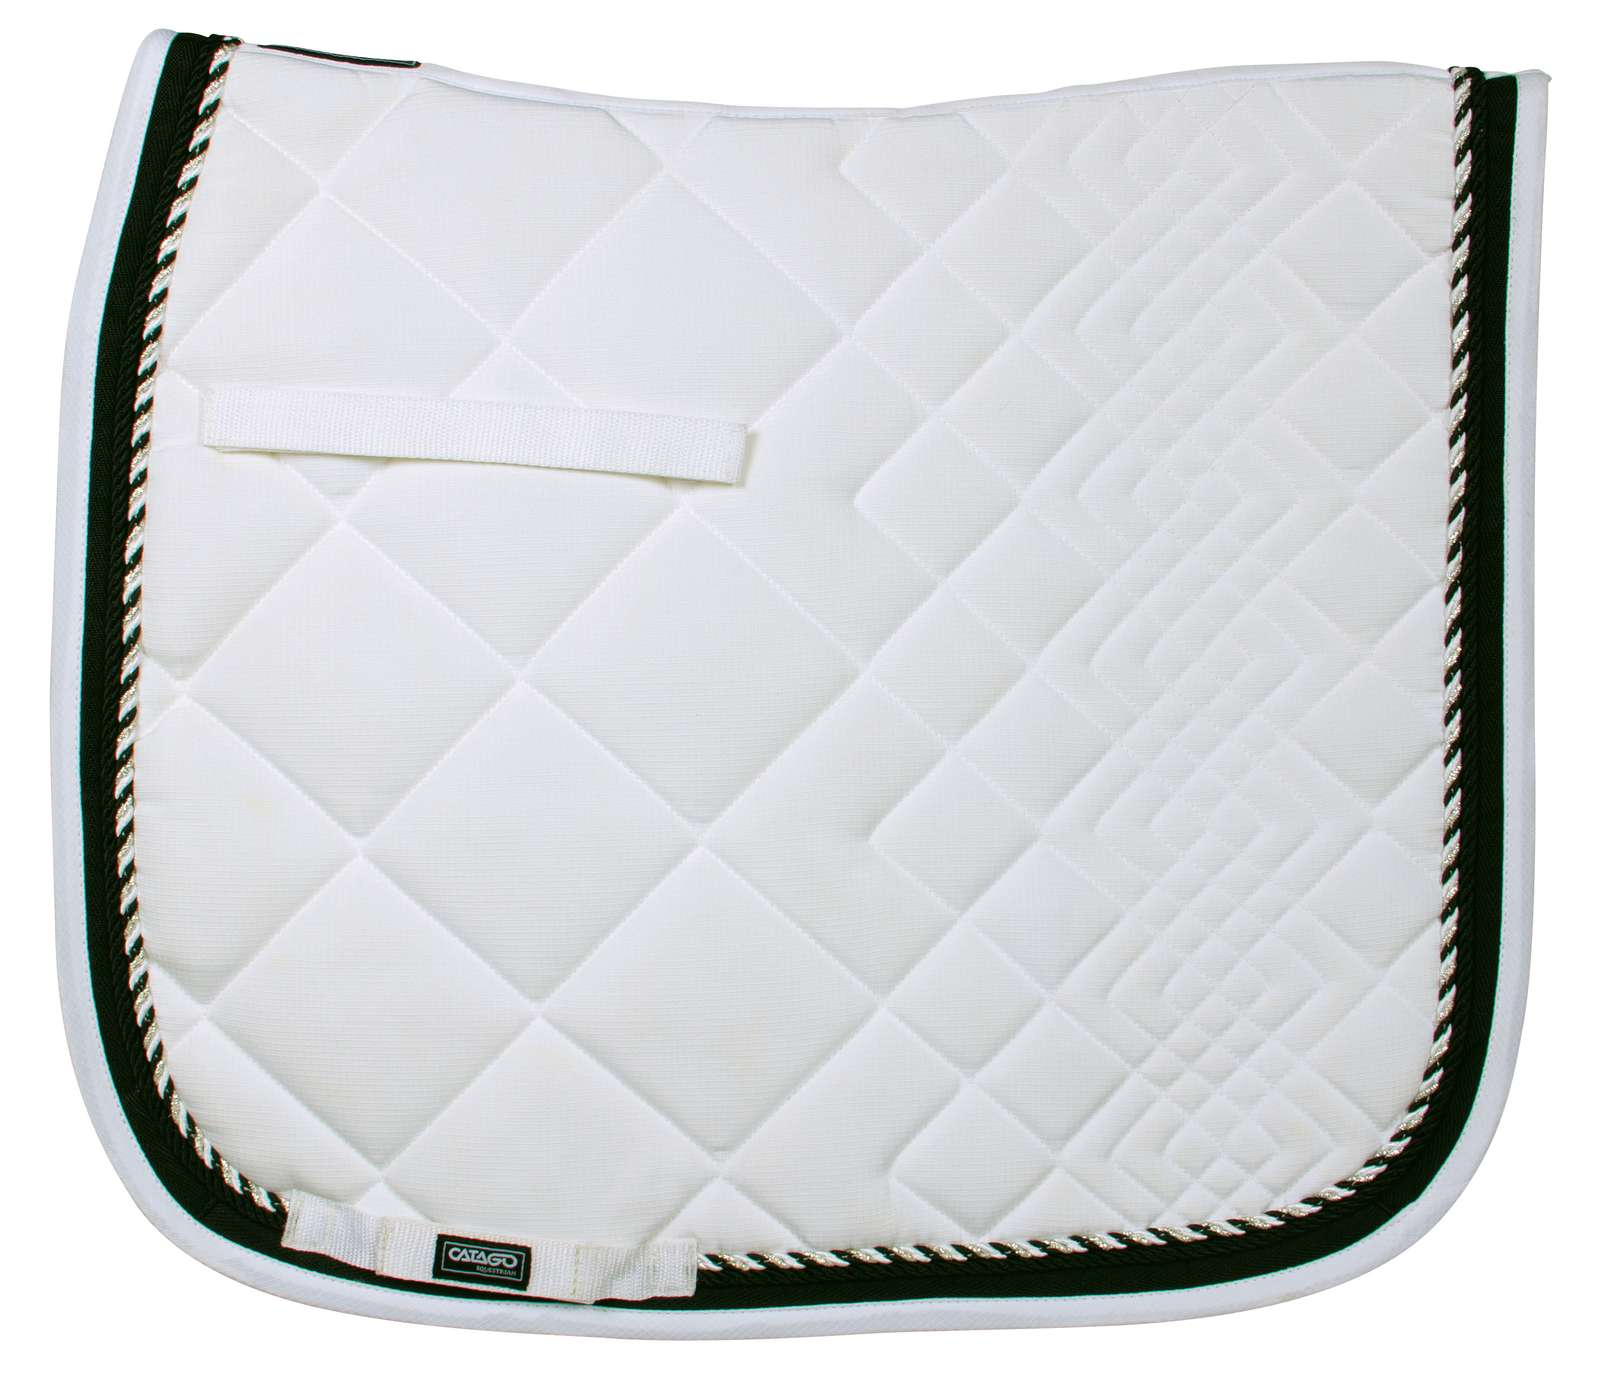 CATAGO Comfort Diamond saddle pad In White / Black - Dressage Only - Divine Equestrian